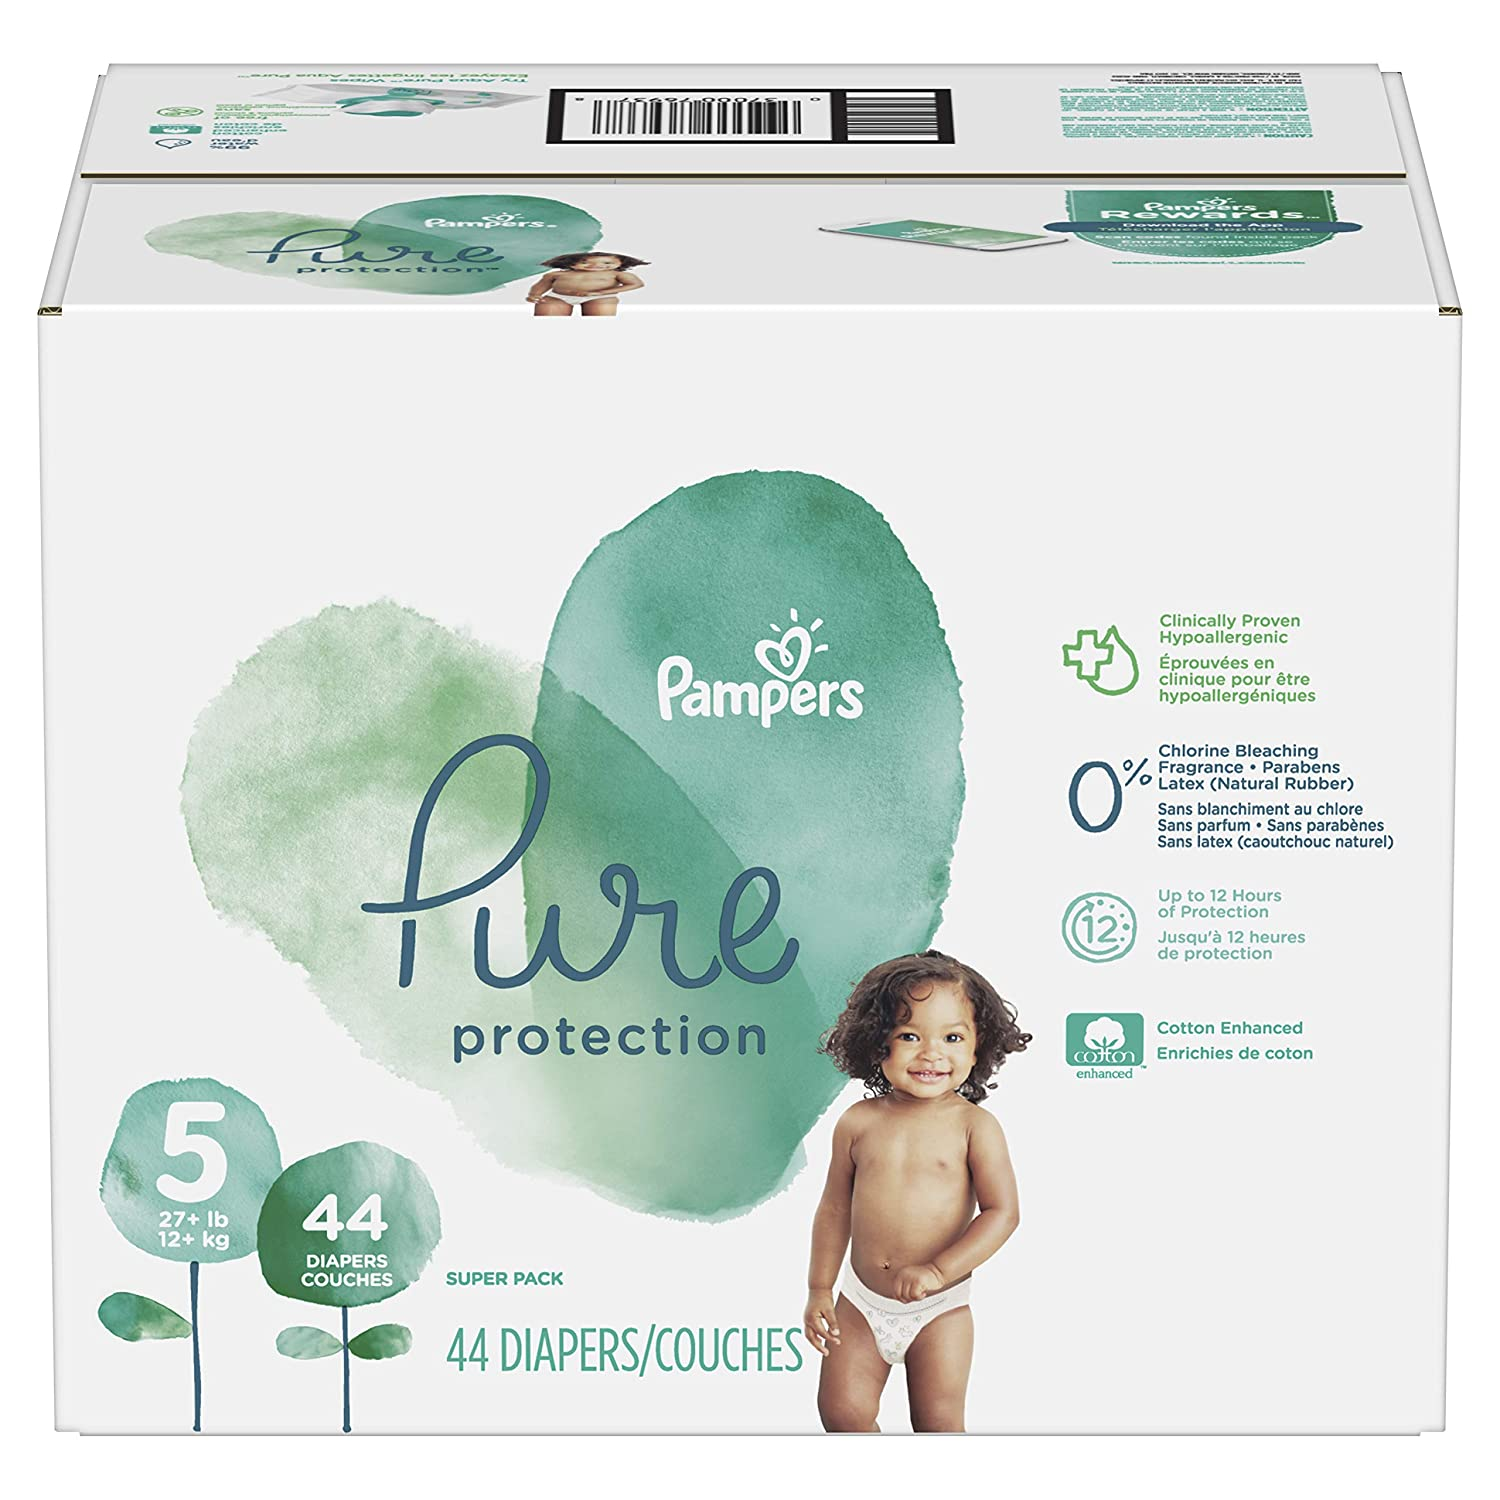 Pampers Pure Disposable Baby Diapers, Hypoallergenic and Fragrance Free Protection, Size 5, 44 Count Procter and Gamble